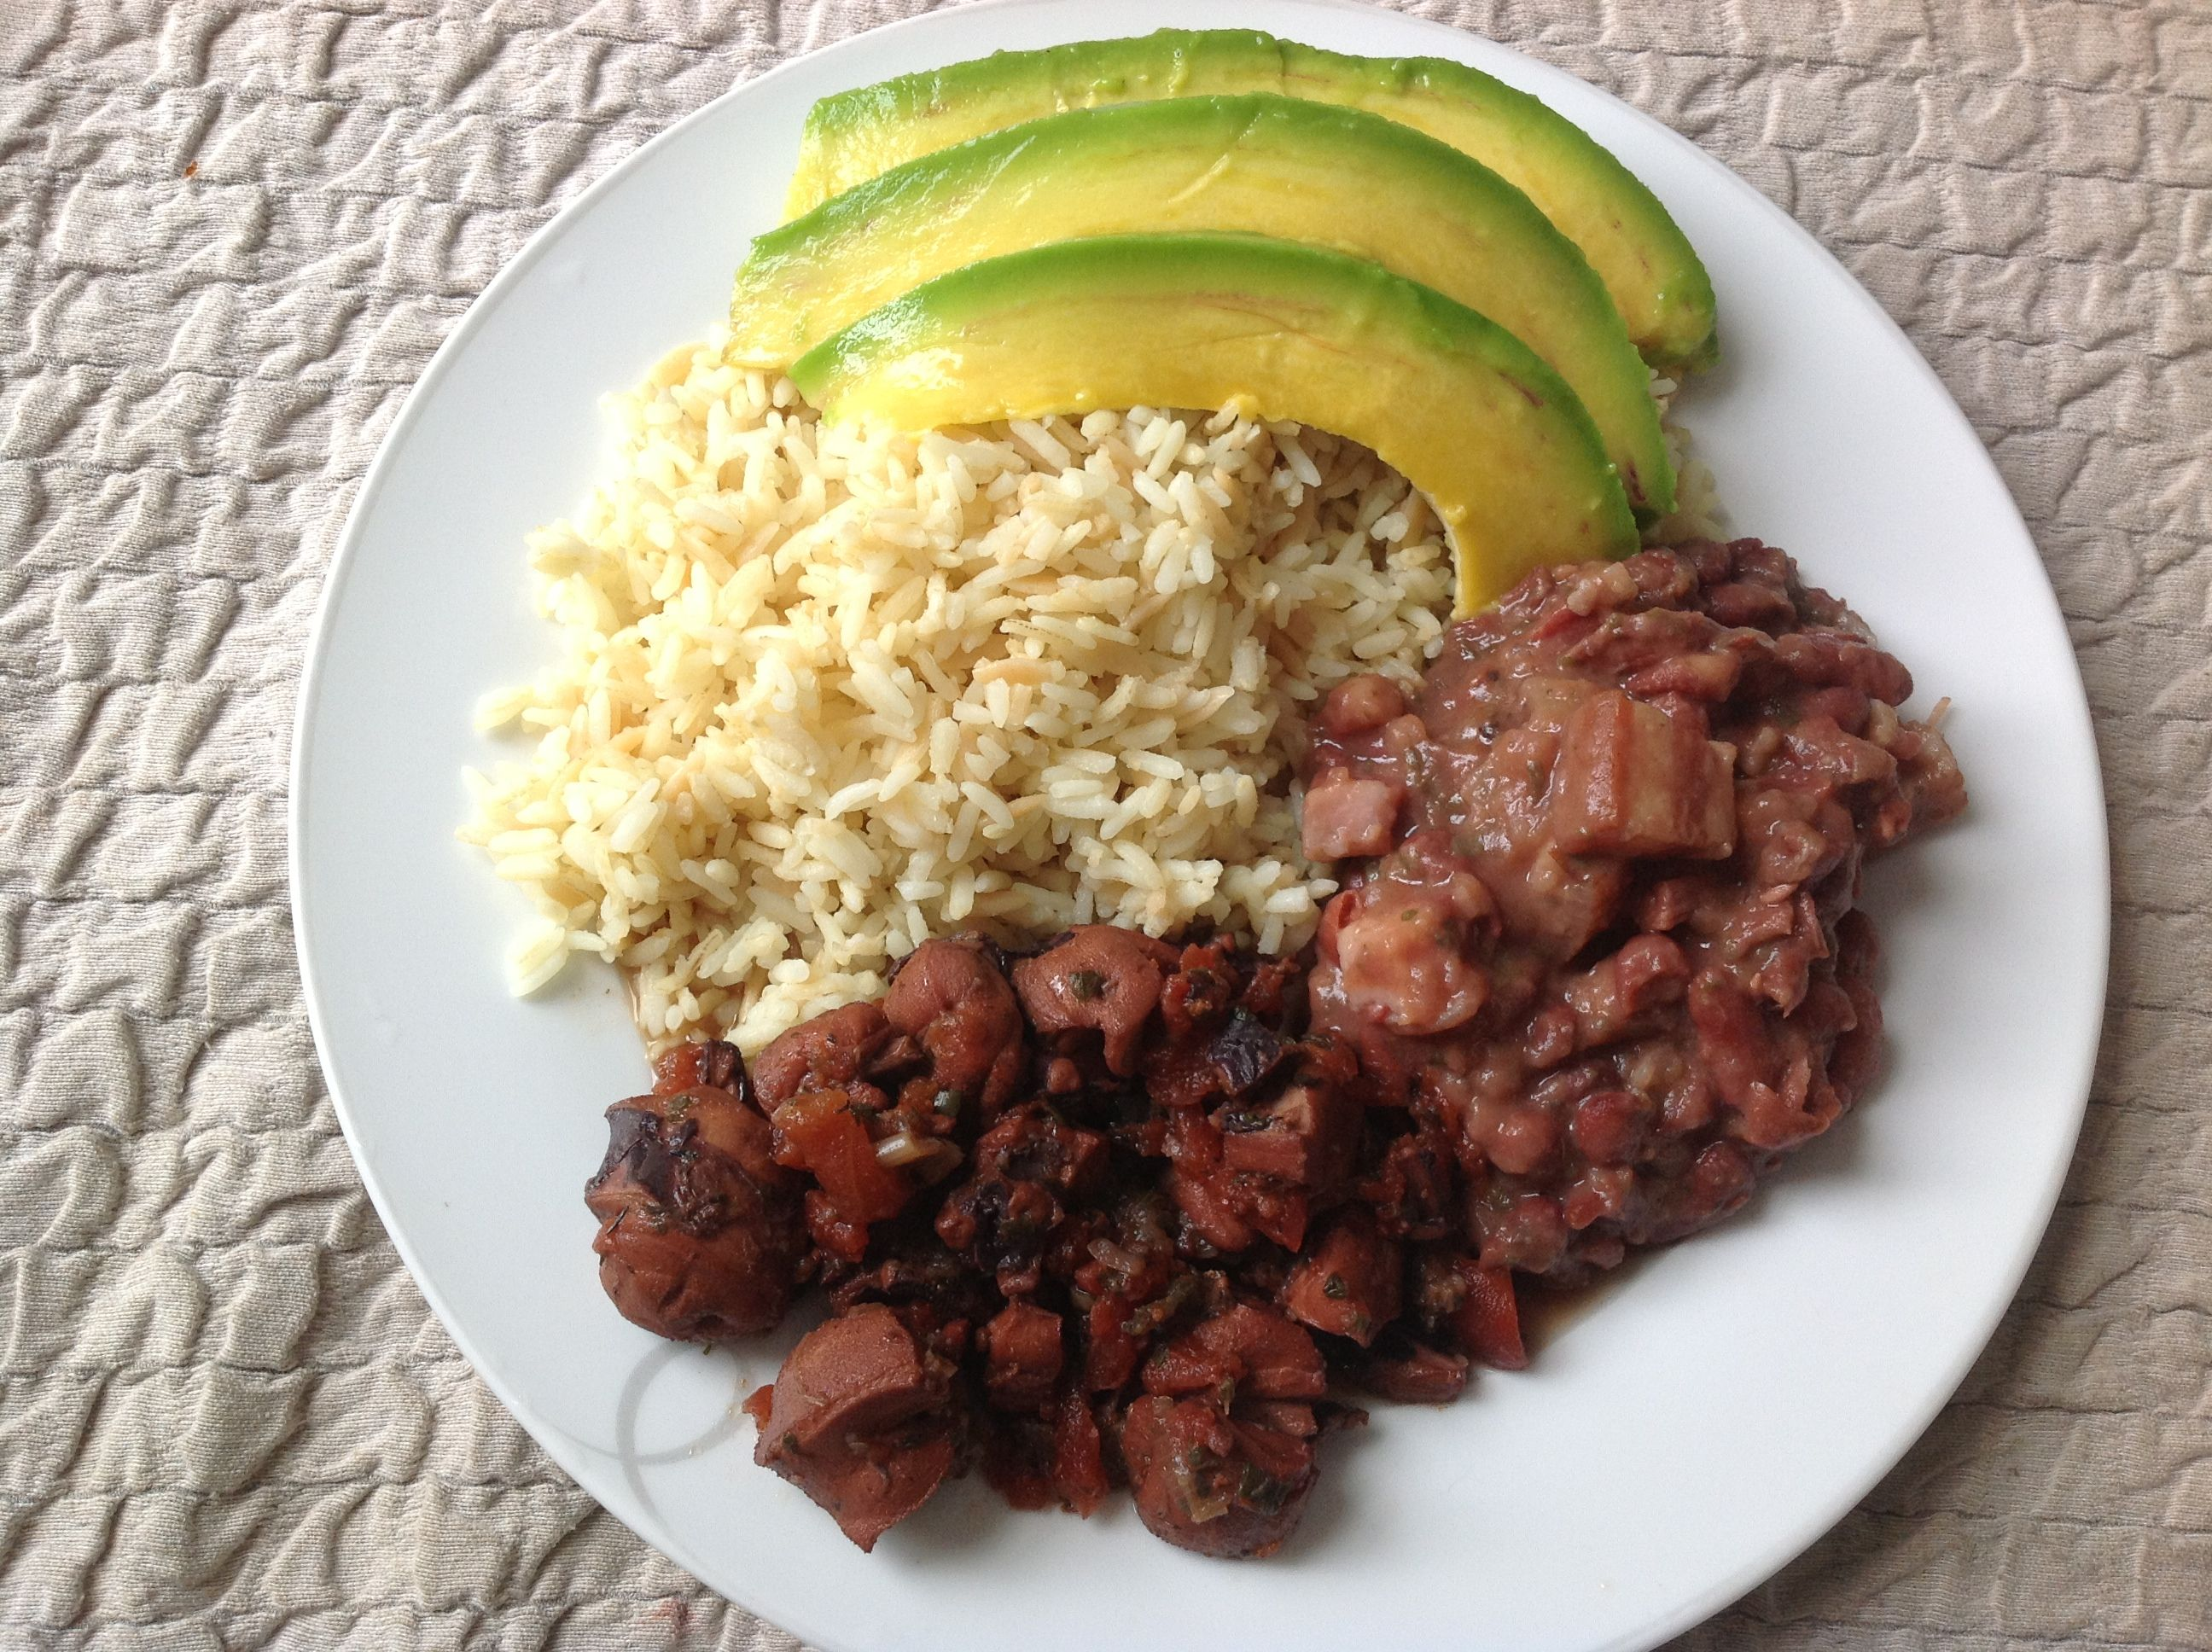 Chatrou, pois rouges, riz et avocat / octopus, red bean, rice and avocado